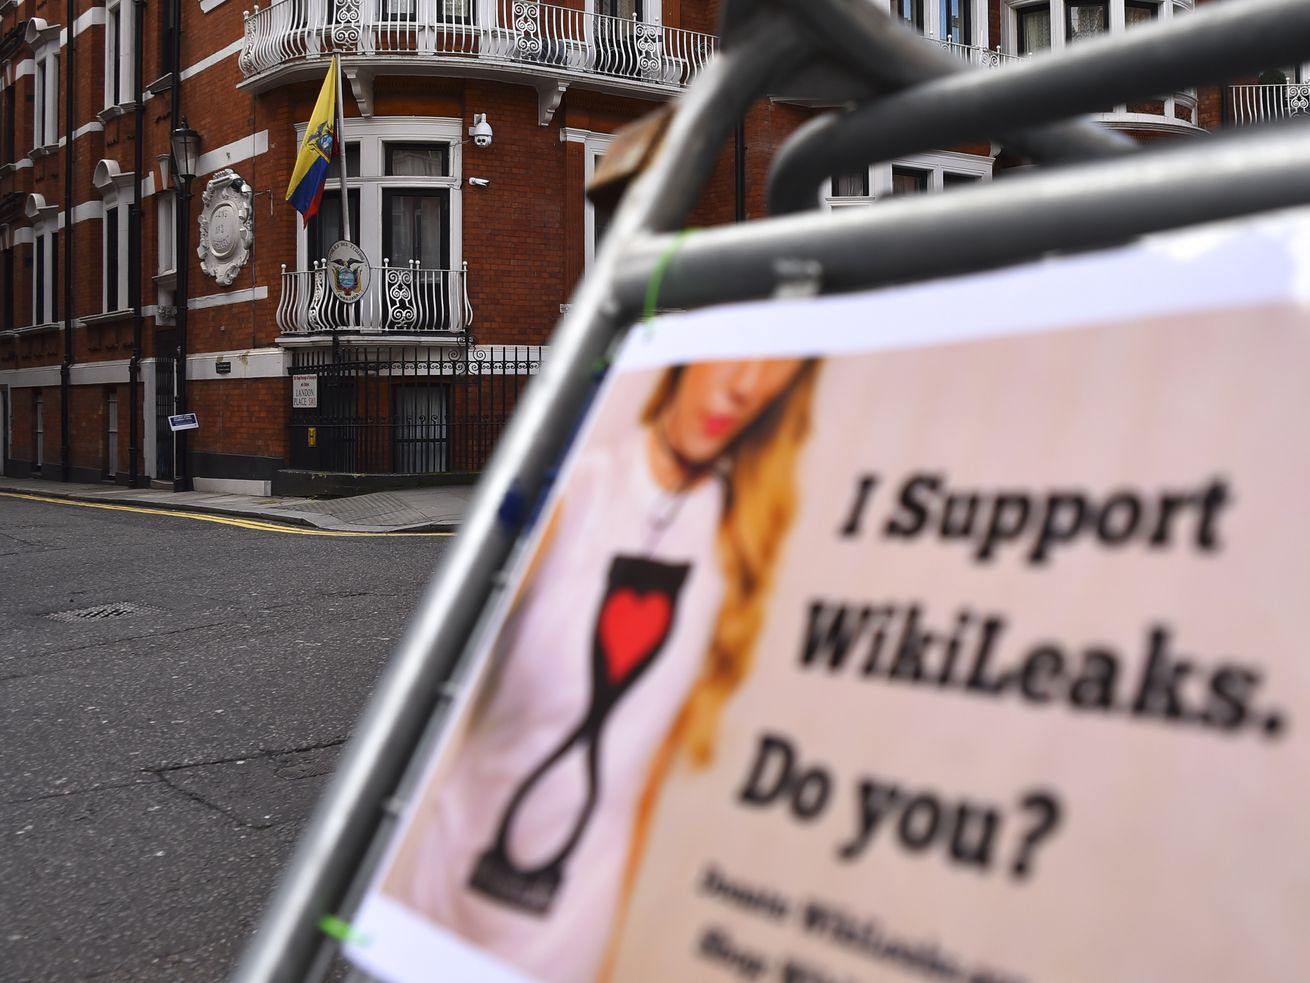 A WikiLeaks supporter's sign near the Ecuador Embassy in London.